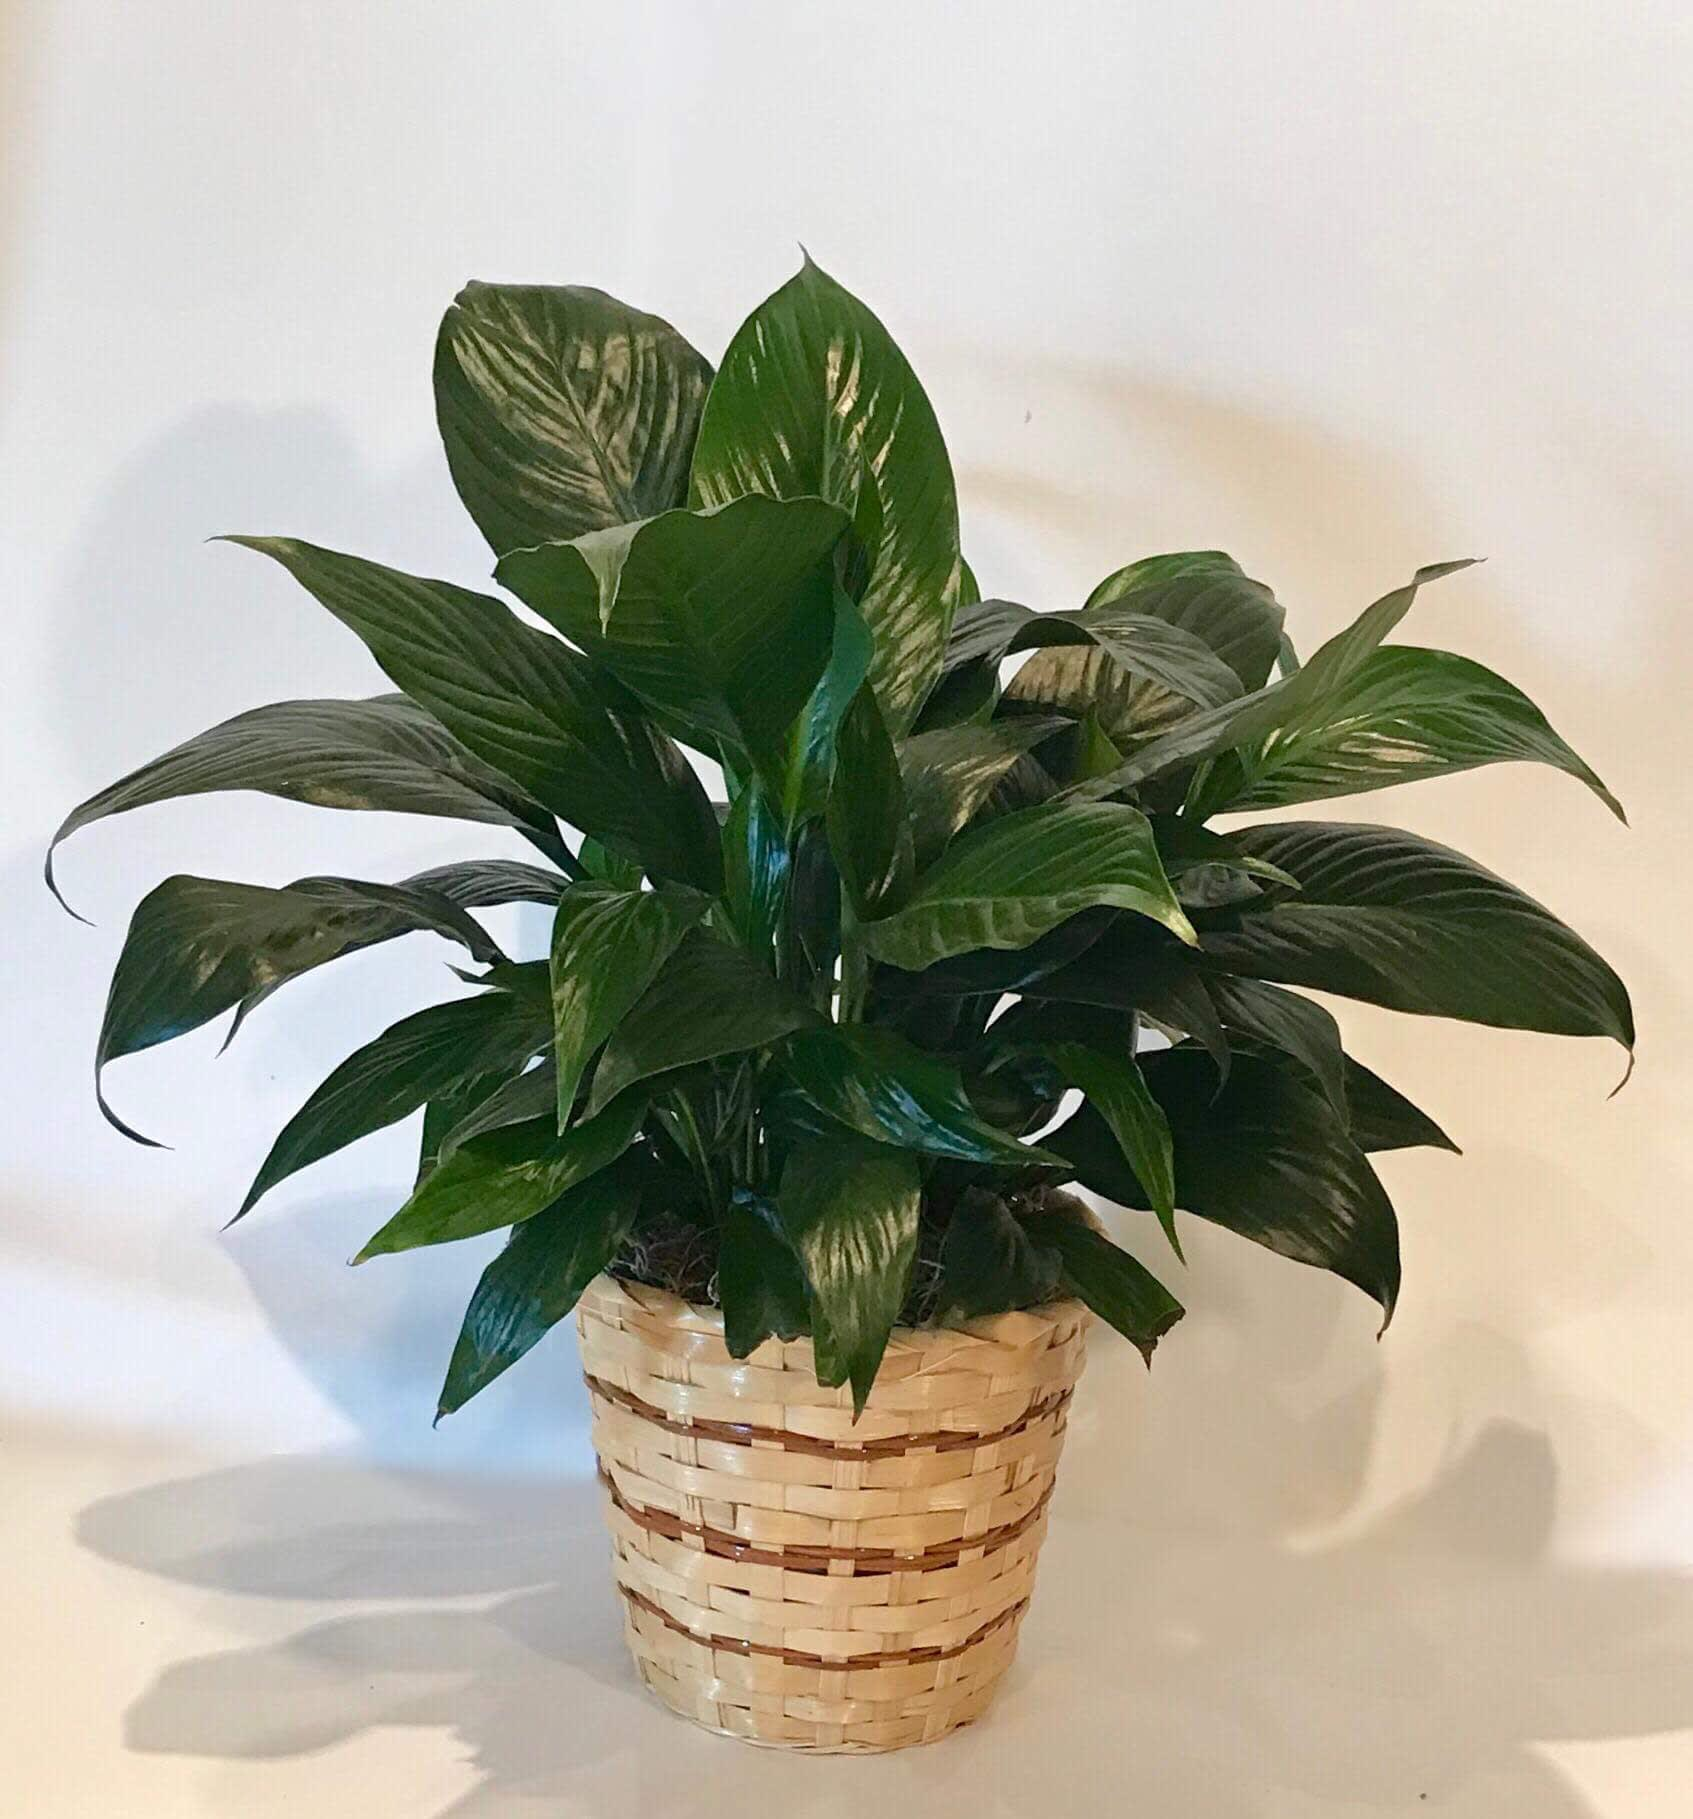 Peace Lily Plant in Tulsa, OK | Mrs. DeHavens Flower Shop on corn plant houseplant, bamboo palm houseplant, dragon tree houseplant, kentia palm houseplant, snake plant houseplant, kalanchoe houseplant, begonia houseplant, nephthytis houseplant, rubber plant houseplant, philodendron houseplant, purple wandering jew houseplant, ivy houseplant, cactus houseplant, rubber tree houseplant, schefflera houseplant, dieffenbachia houseplant, boston fern houseplant, peperomia houseplant, dracaena houseplant,